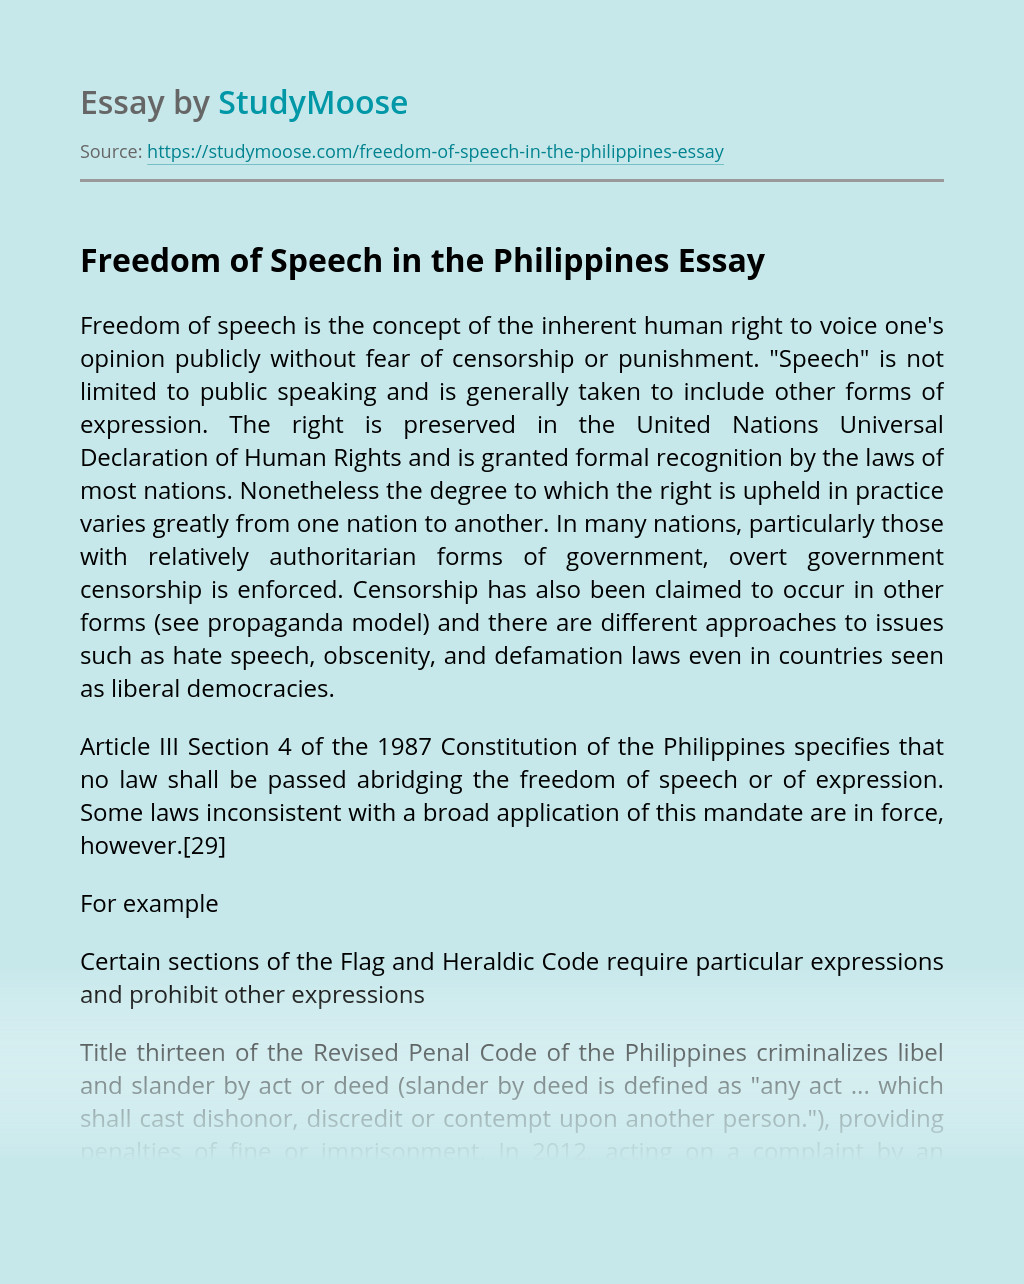 Freedom of Speech in the Philippines